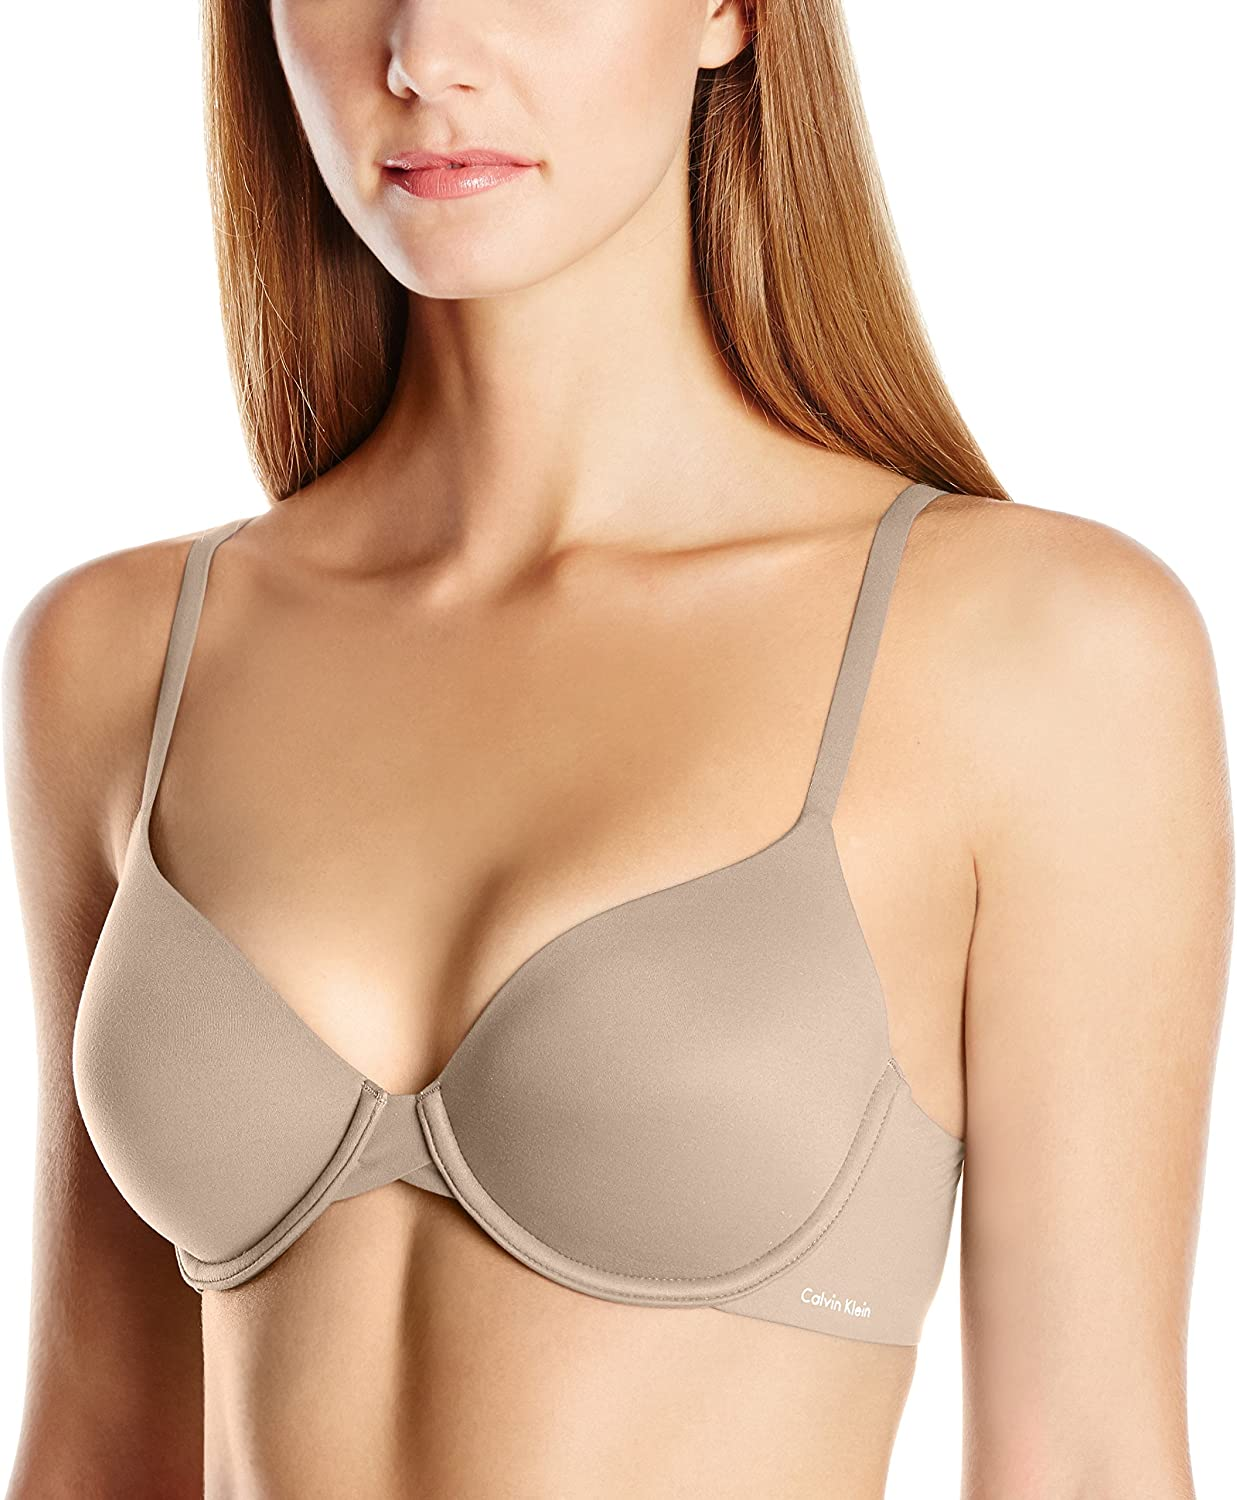 Calvin Klein Underwear Women's Perfectly Fit Full Coverage Bra with Light Memory Touch Lining